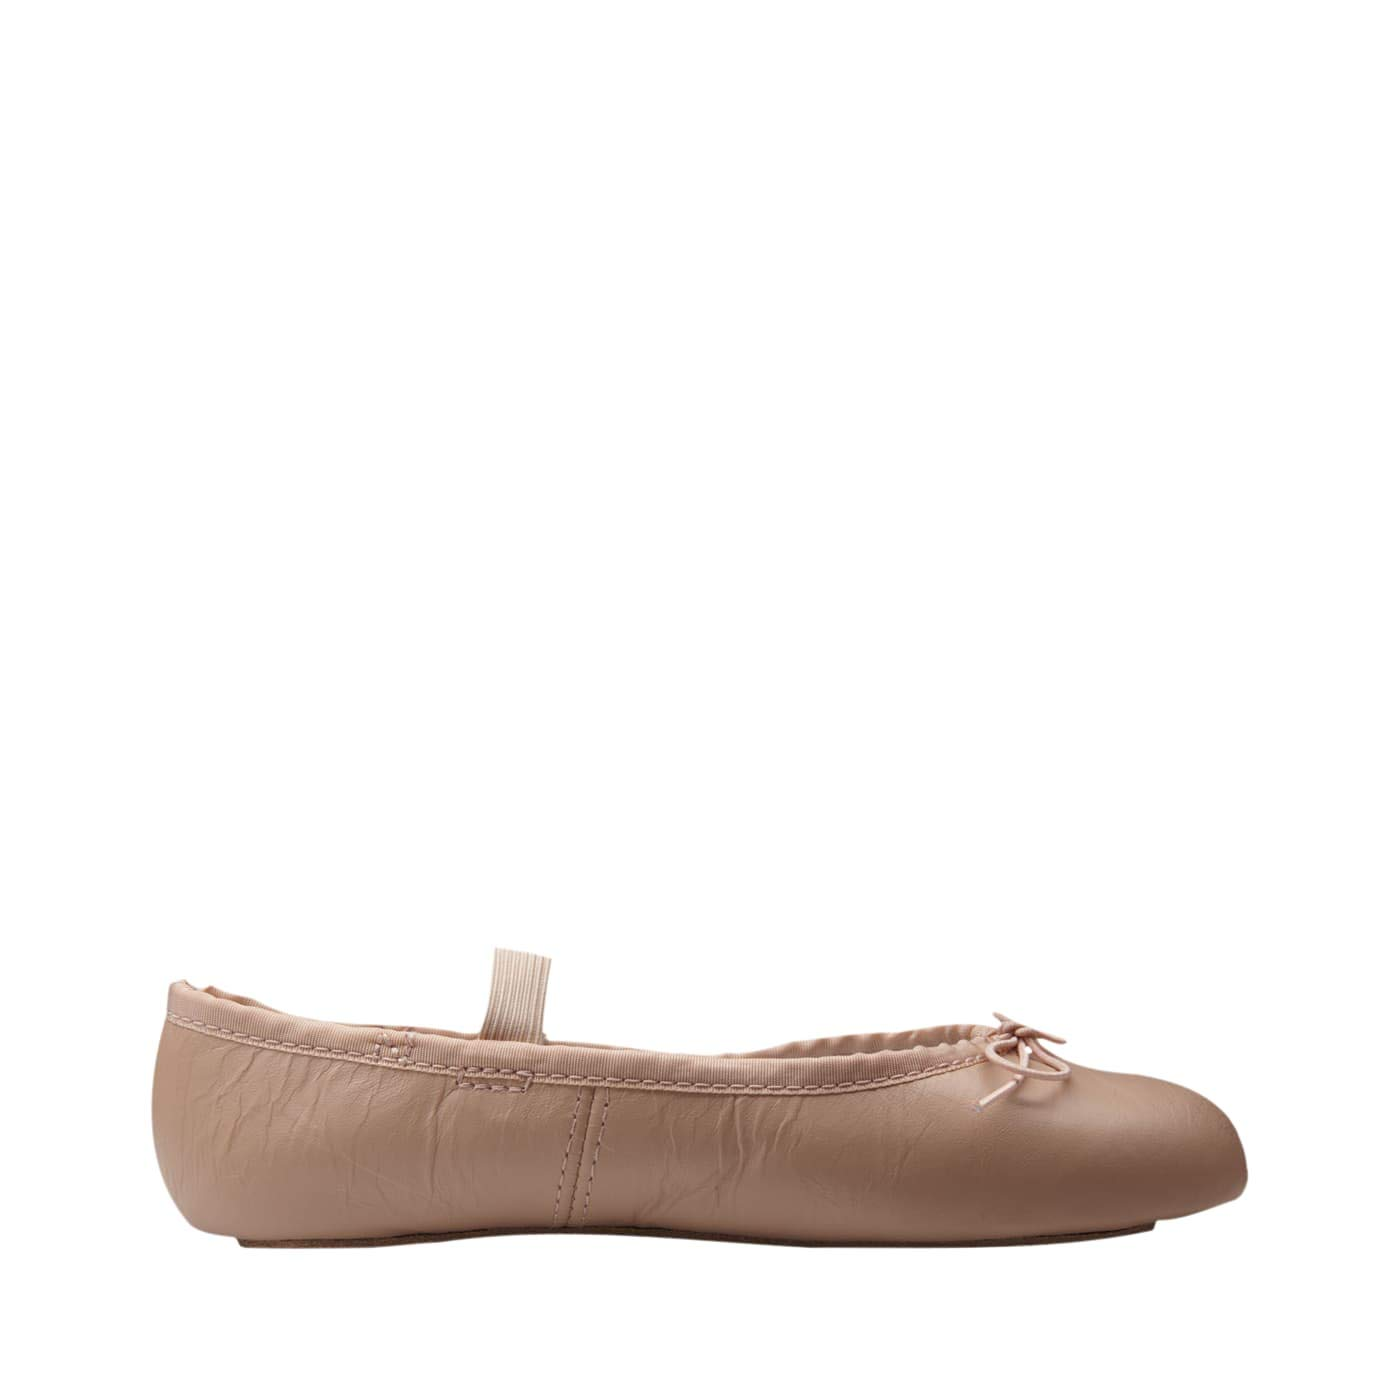 American Ballet Theatre for Spotlights Girls Pink Ballet Shoe 8 M US